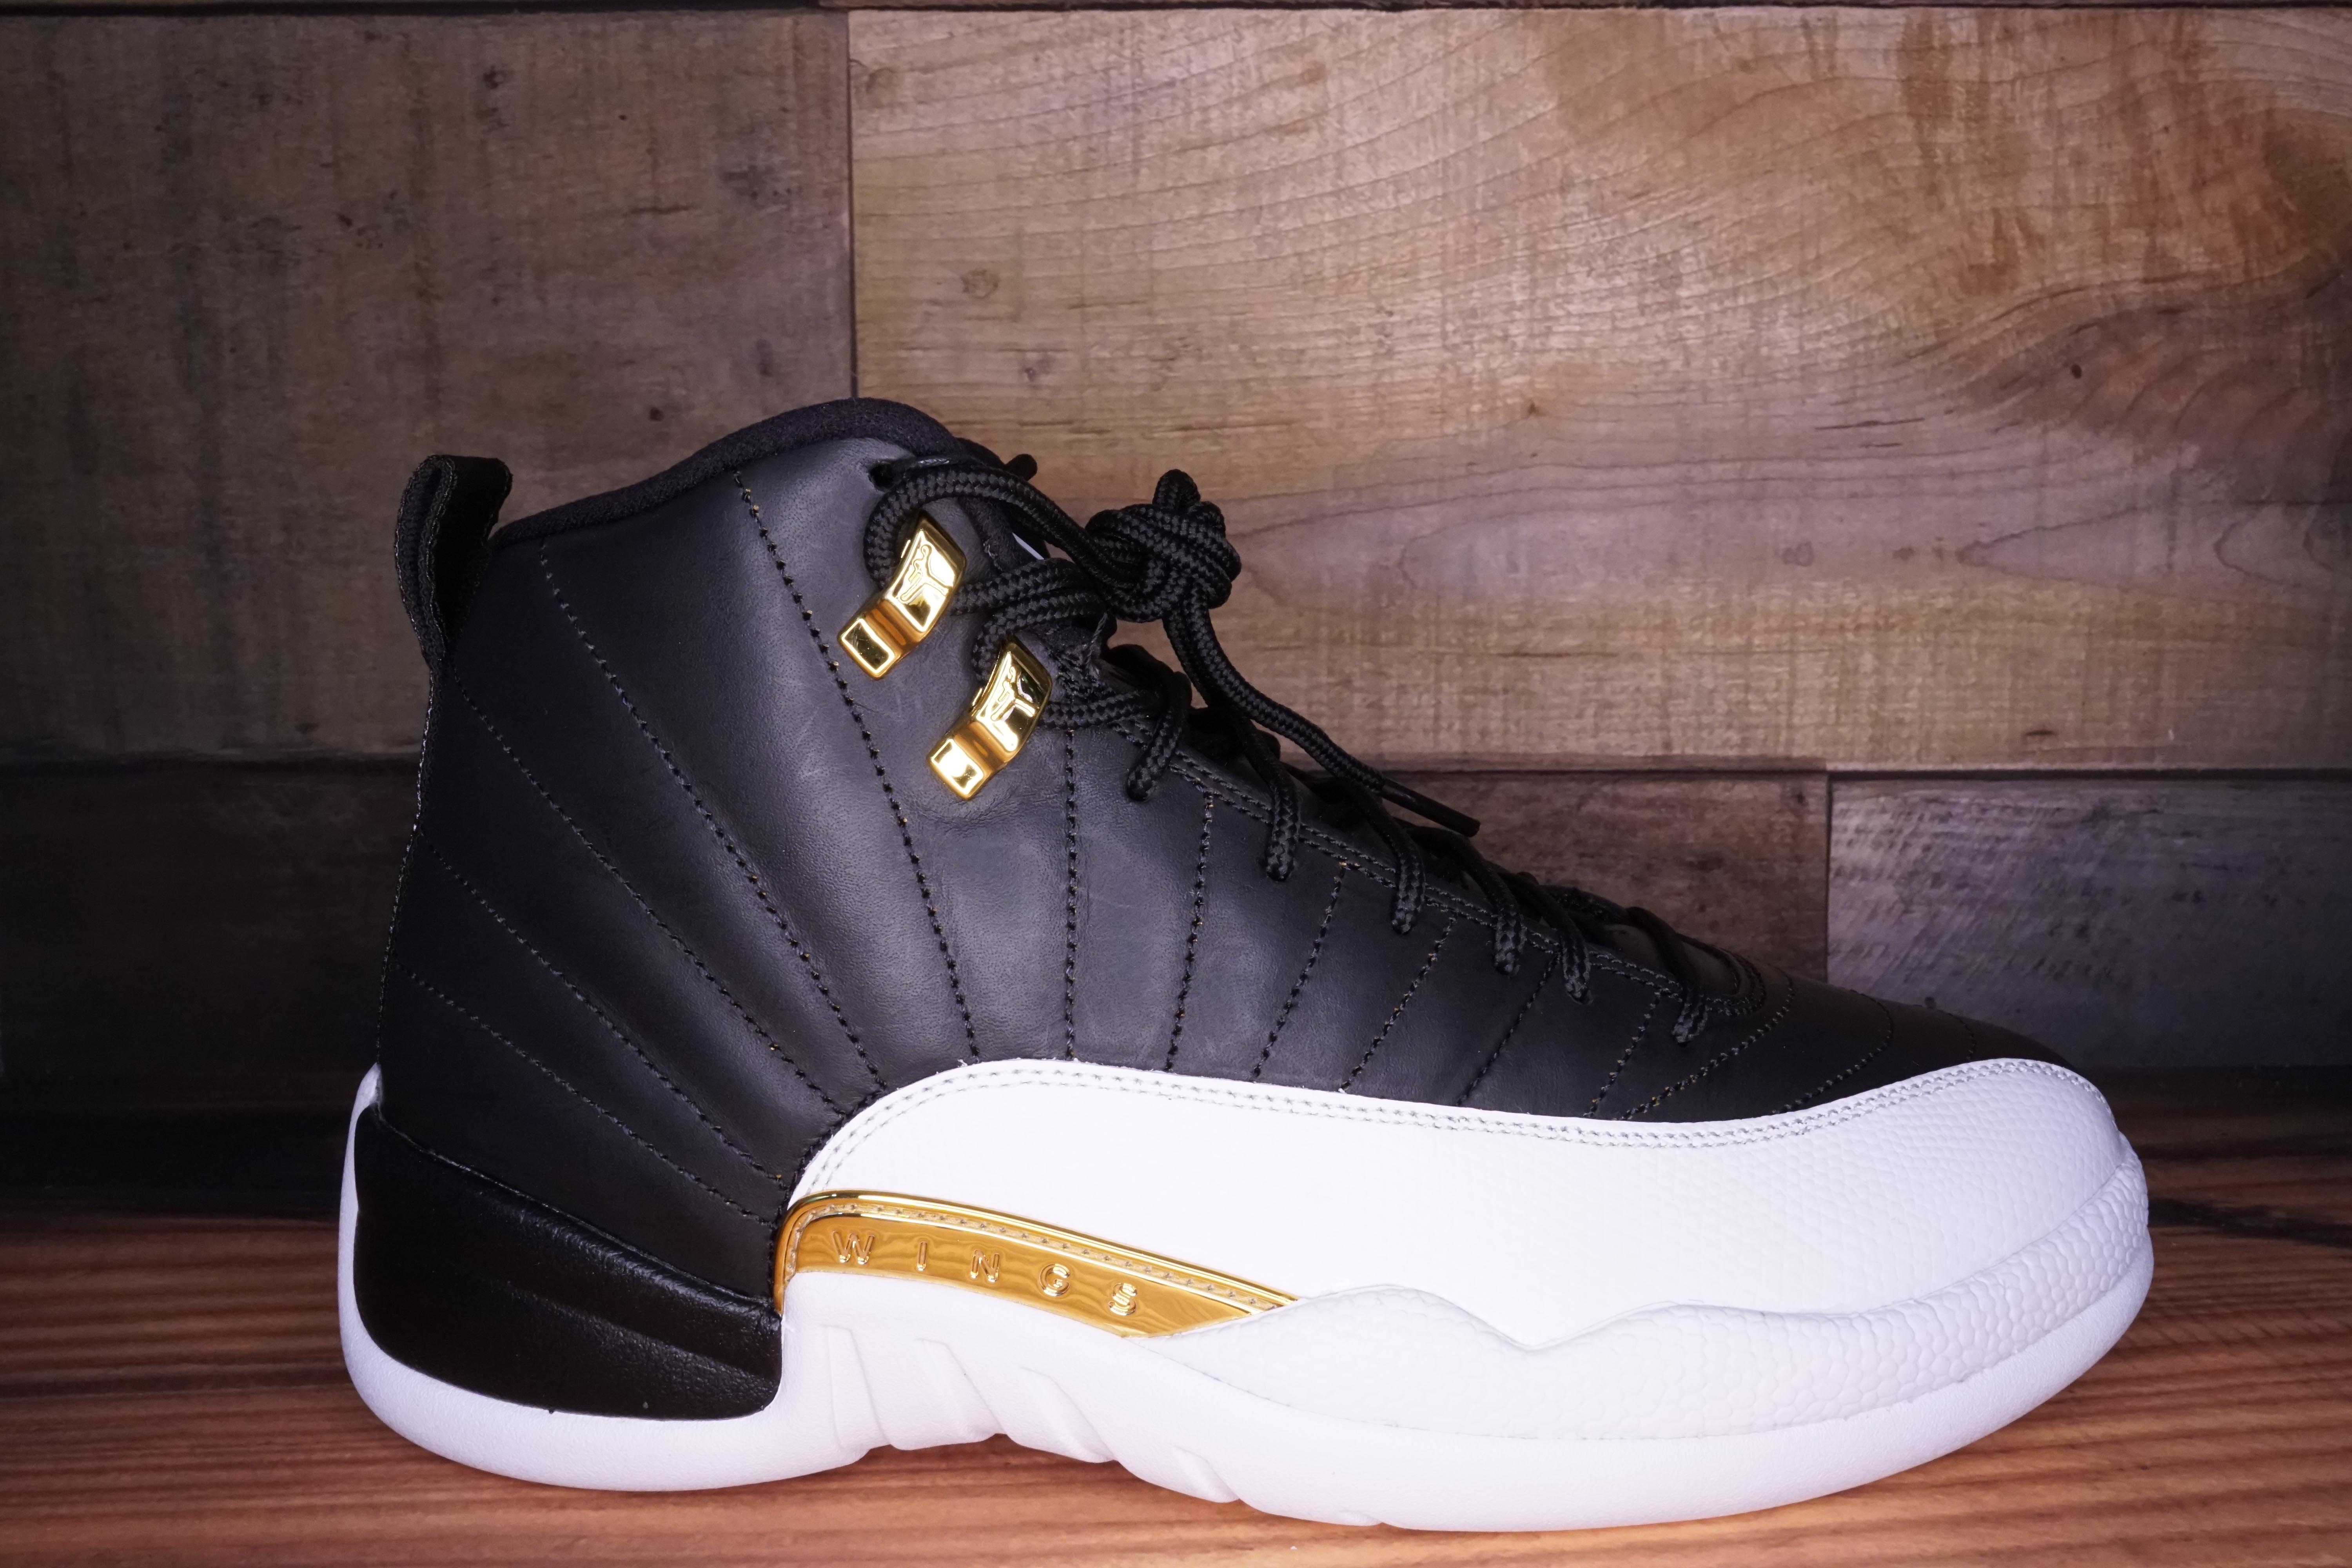 Air-Jordan-12-Retro-WINGS-Size-8.5-New-